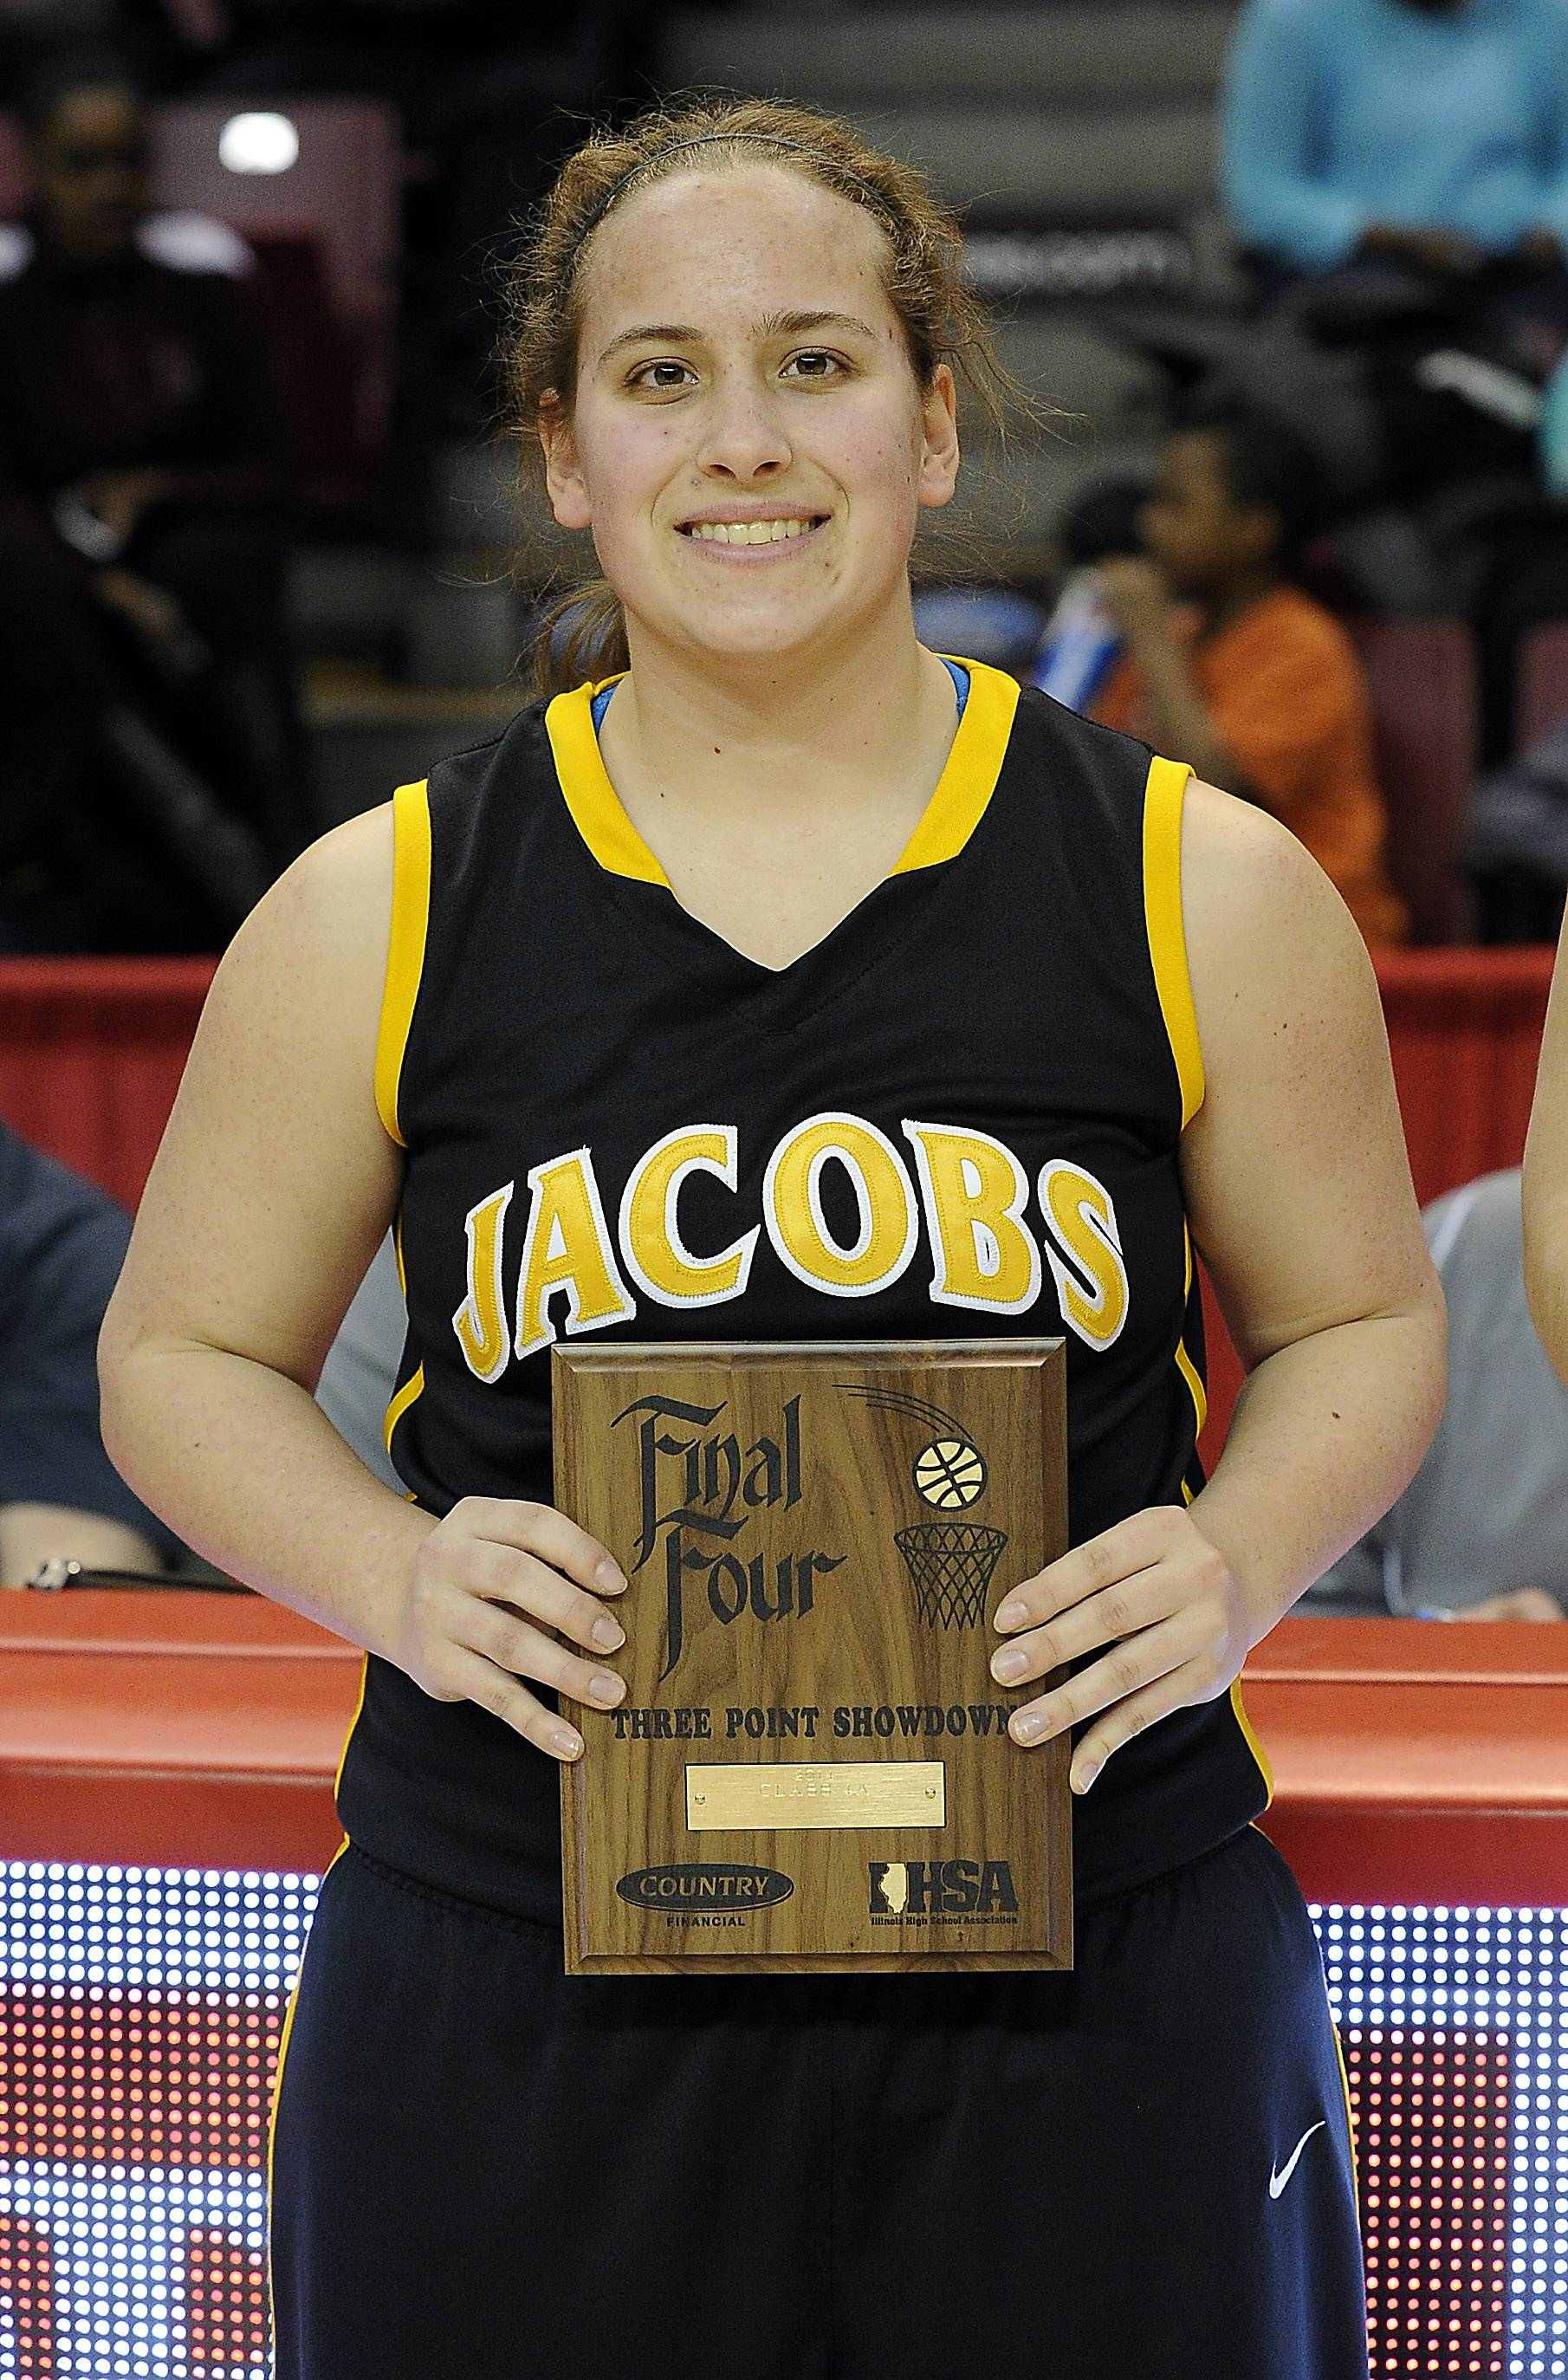 Alyssa Lach of Jacobs is all smiles after reaching the Class 4A Final Four in the IHSA's 3-point contest at Redbird Arena in Normal last weekend.